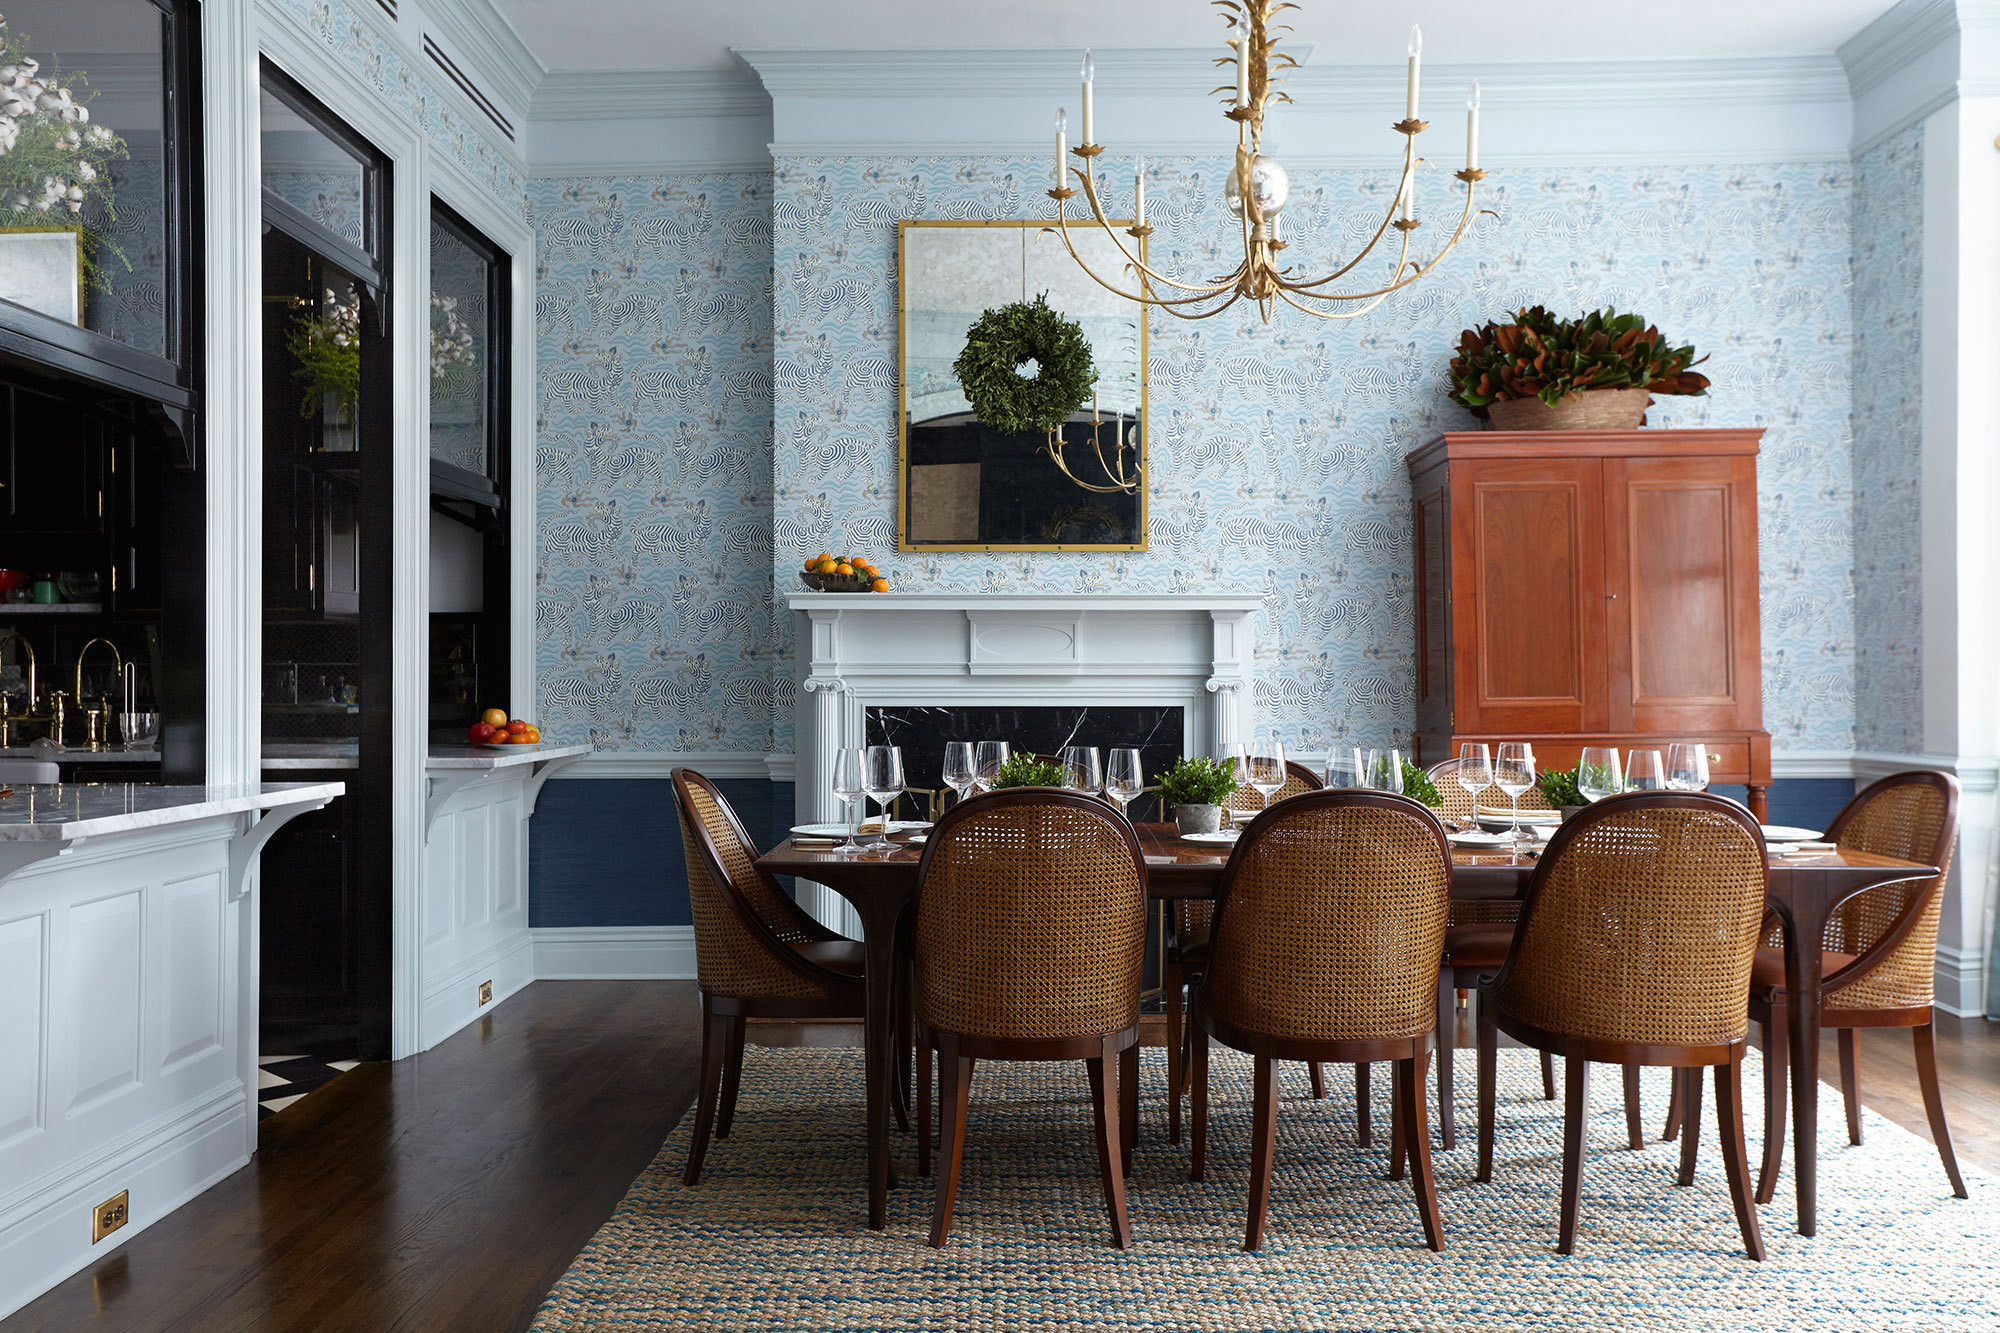 The nbsp elegant dining room nbsp in nbsp Alex and Oliver Wight s Brooklyn  Heights  New. A Perfectly Patterned Brooklyn Heights Home for the Ages   Home